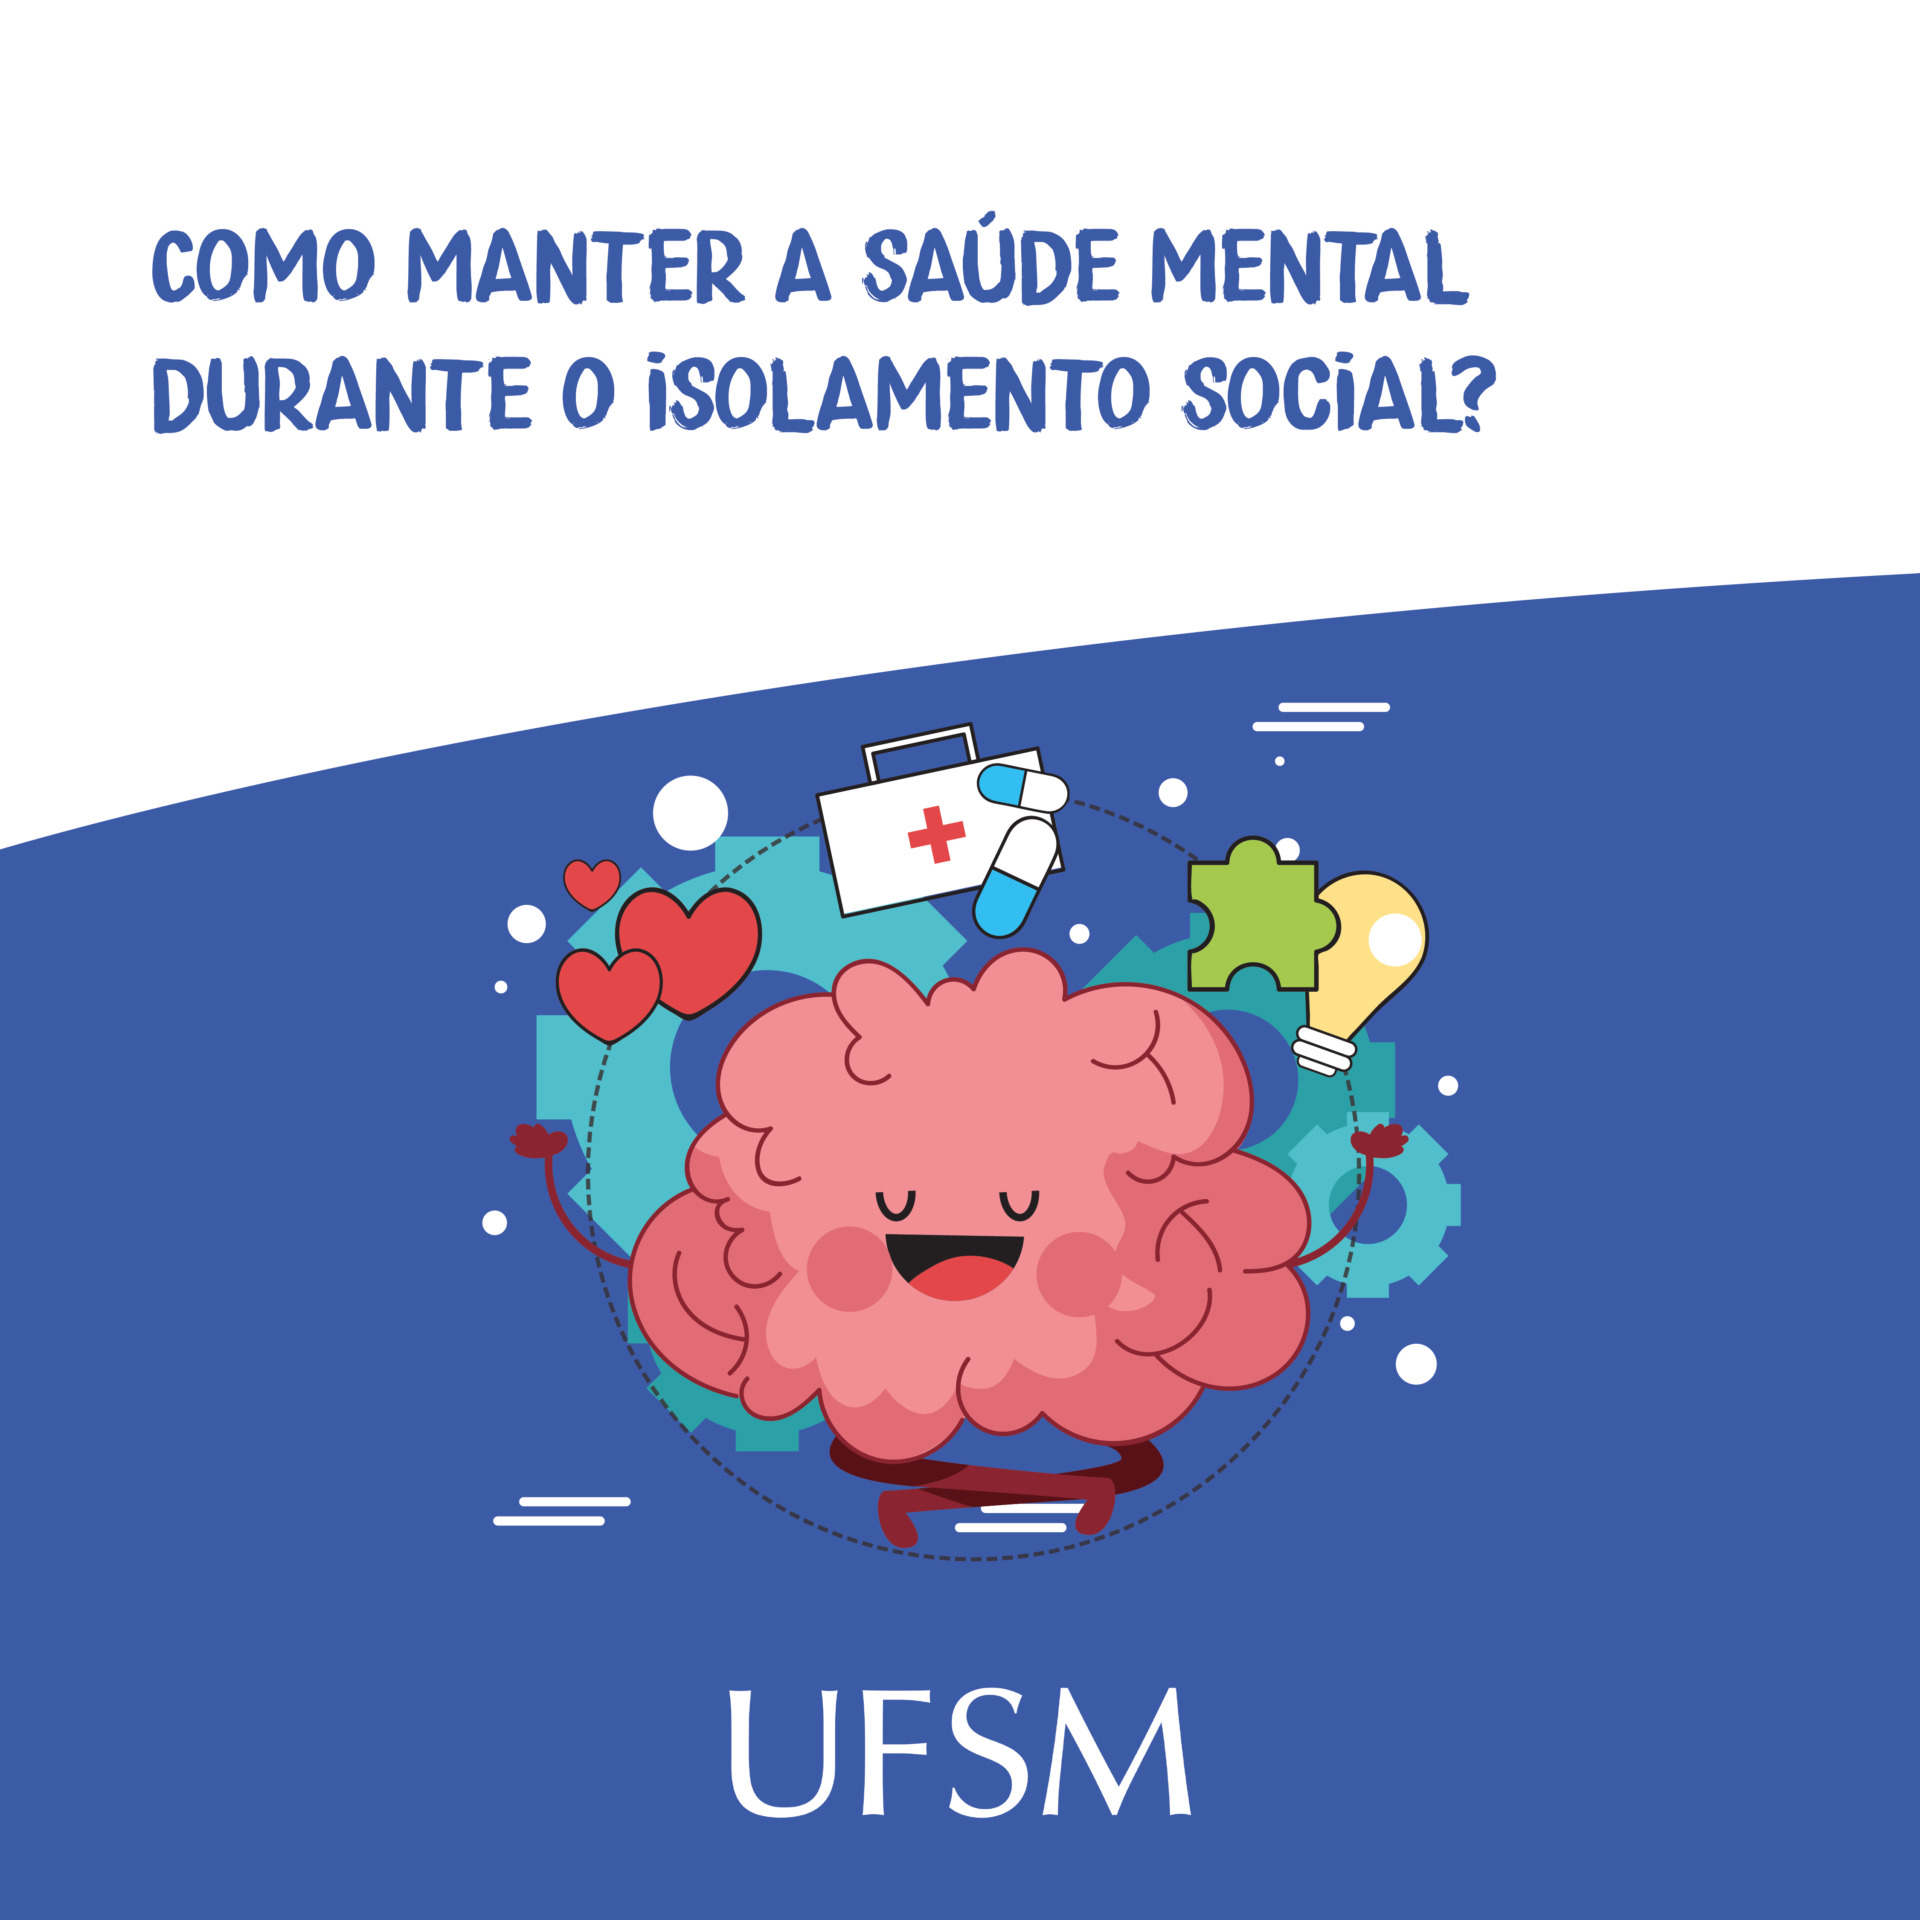 Post Como manter a saúde mental no isolamento social?